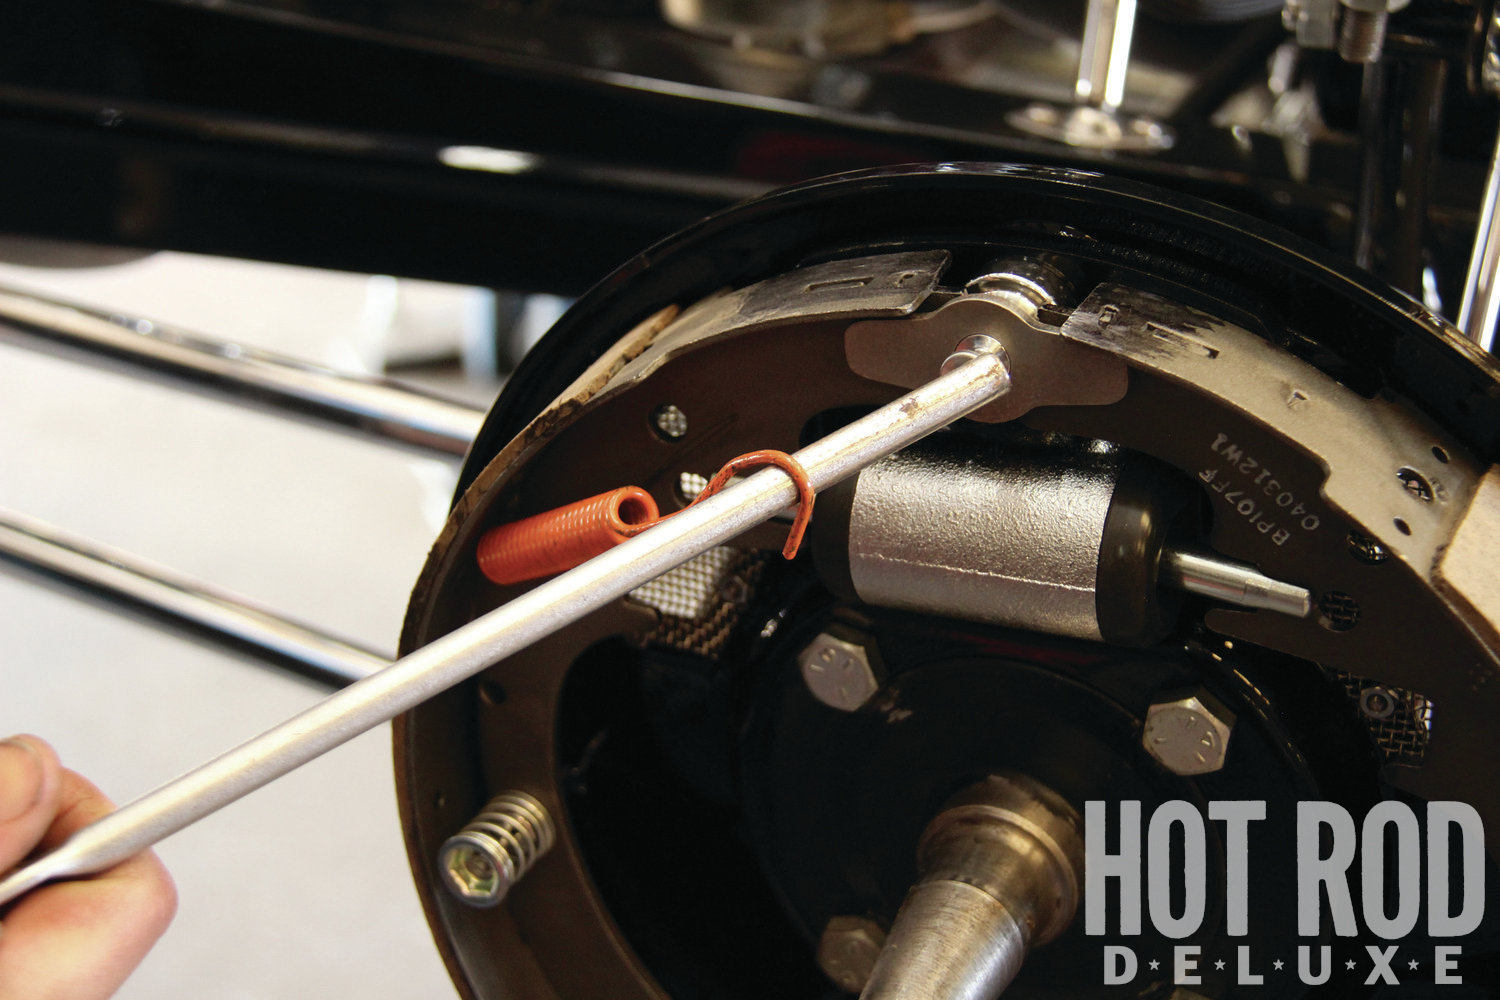 [12] Install the brake springs onto the anchor pin, using the notched end of brake-spring pliers for leverage. This takes a little elbow grease.